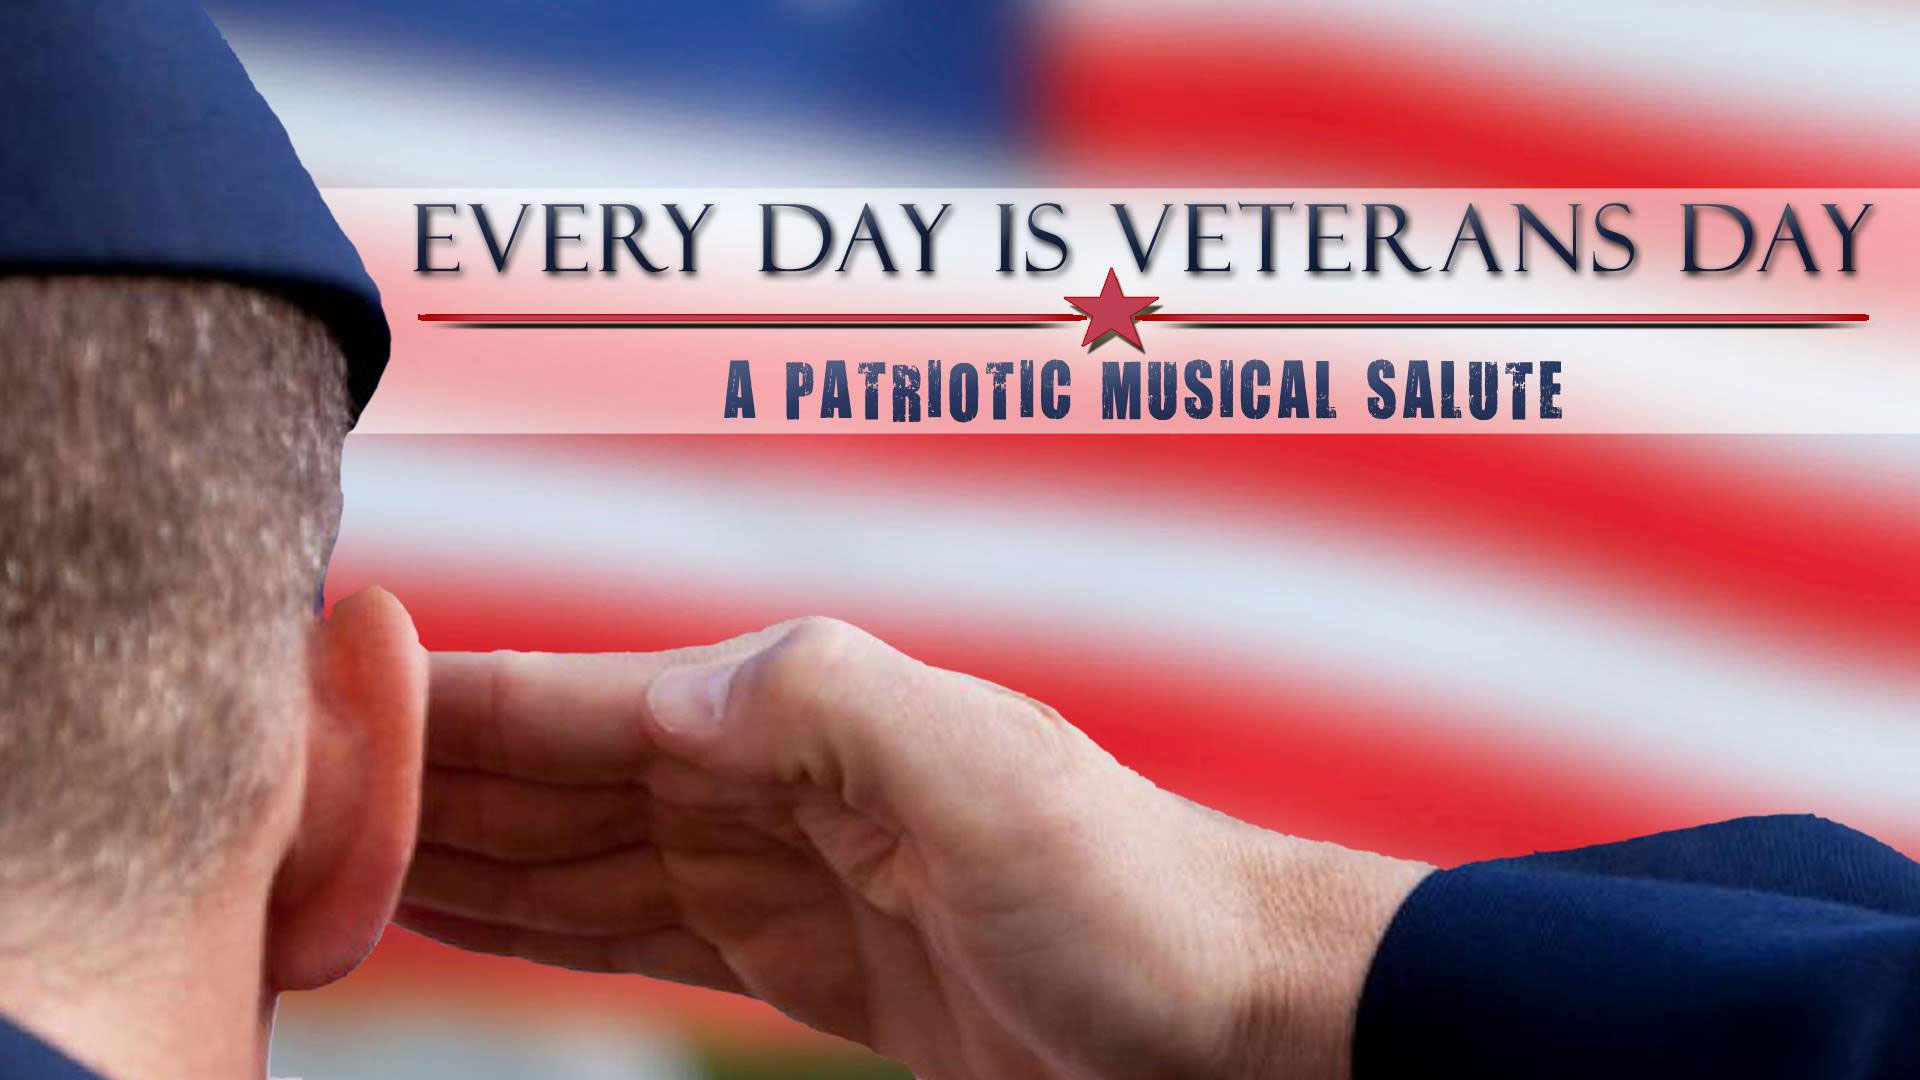 Every Day is Veteran's Day